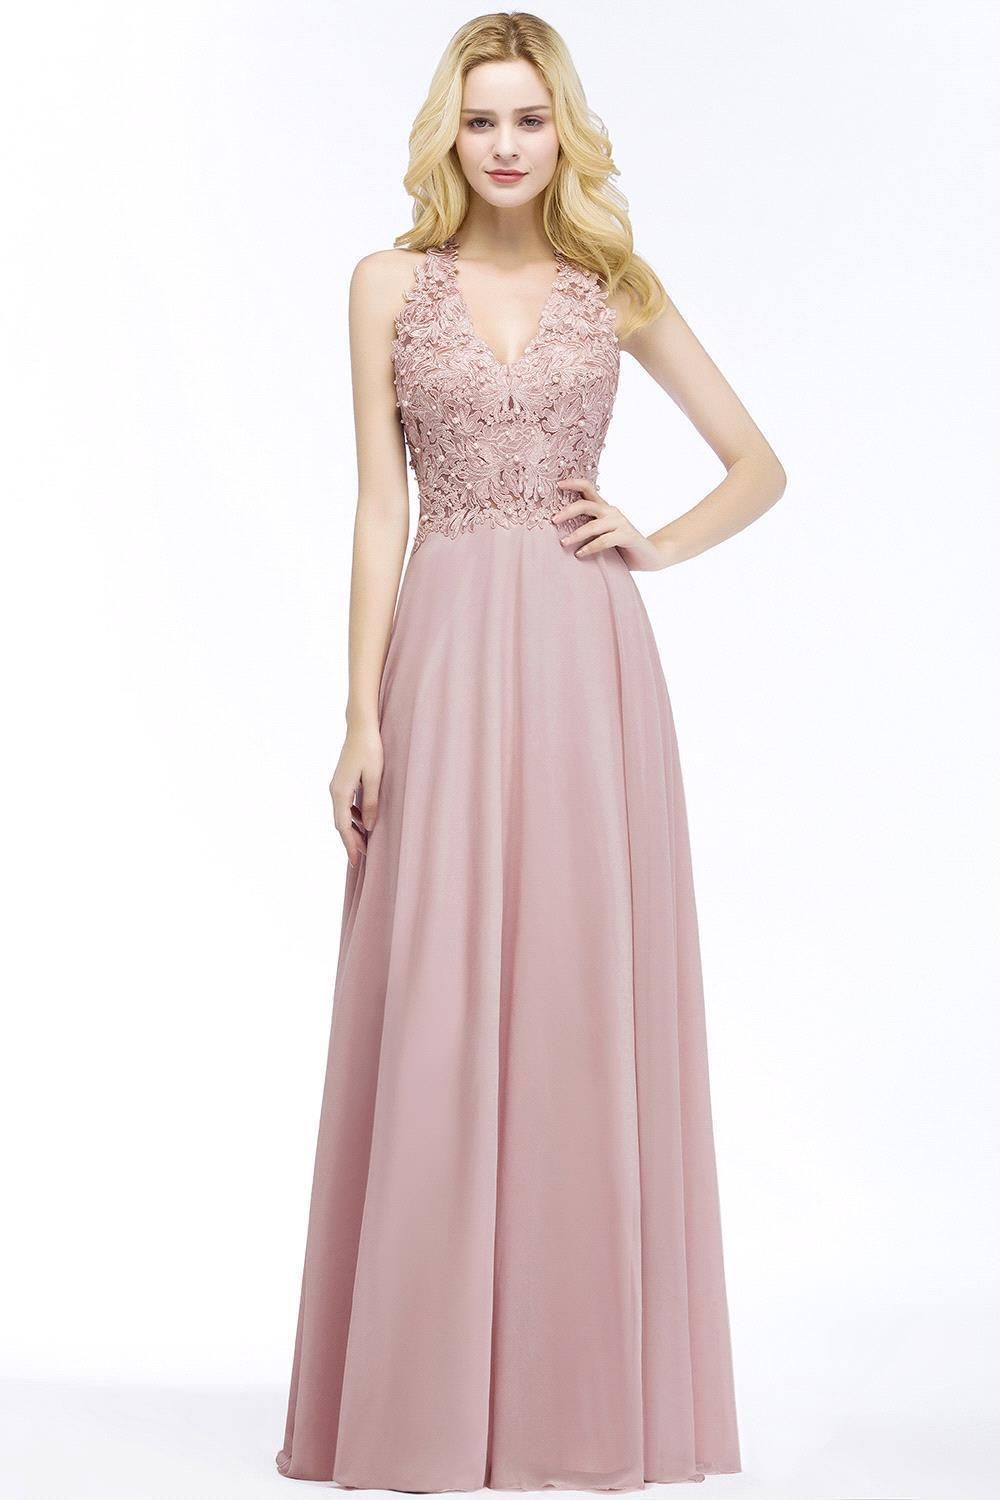 eveningdresses Real Pictures Blush Pink Long Evening Dresses V